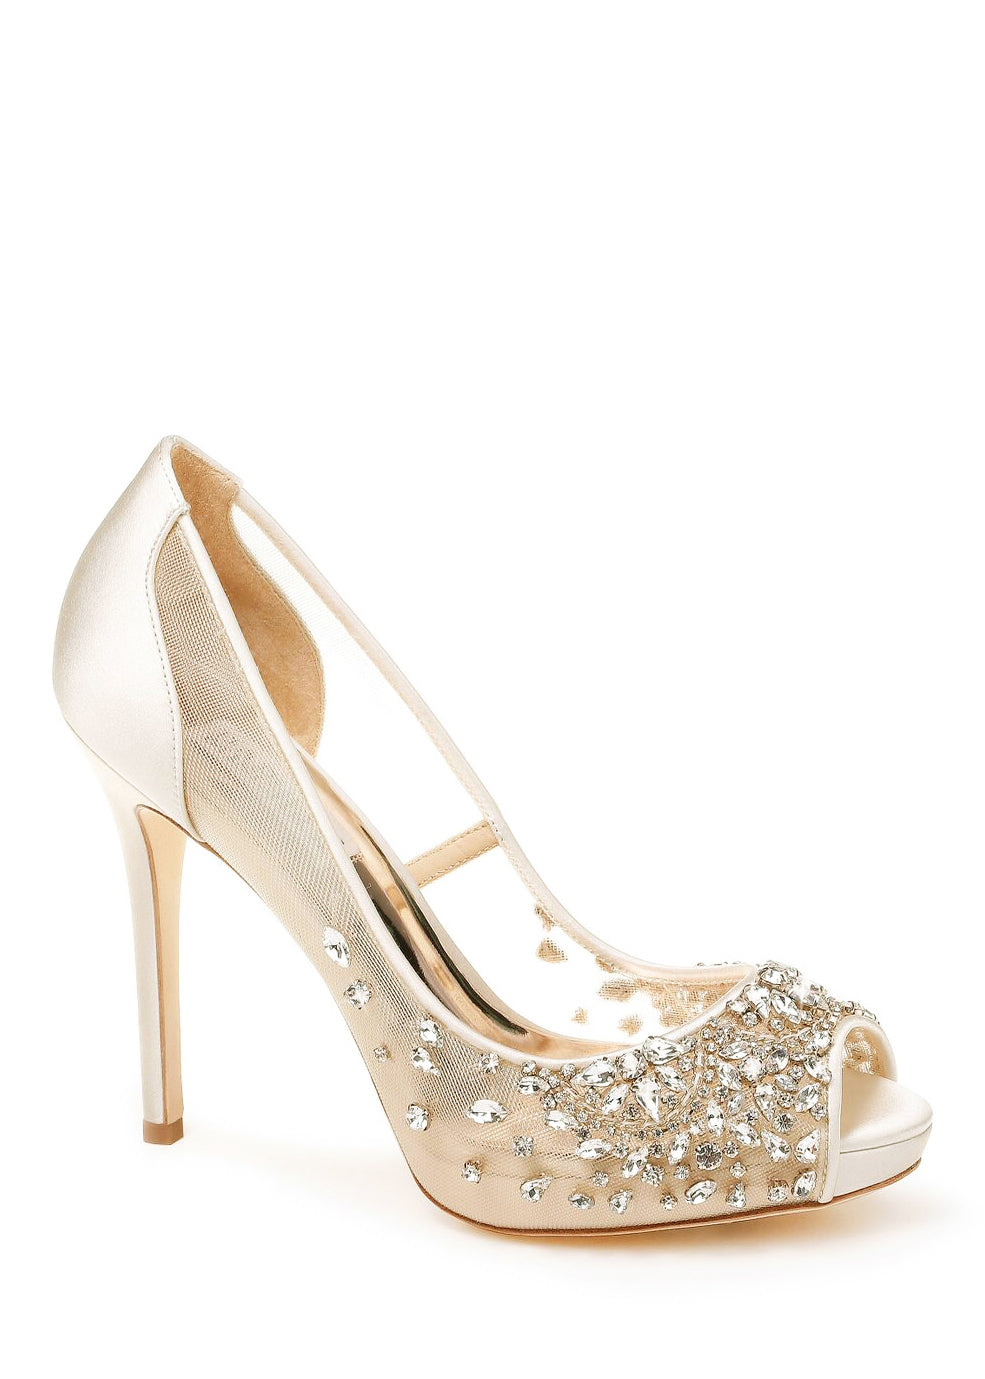 Pepper - Shoes - Badgley Mischka - Eternal Bridal